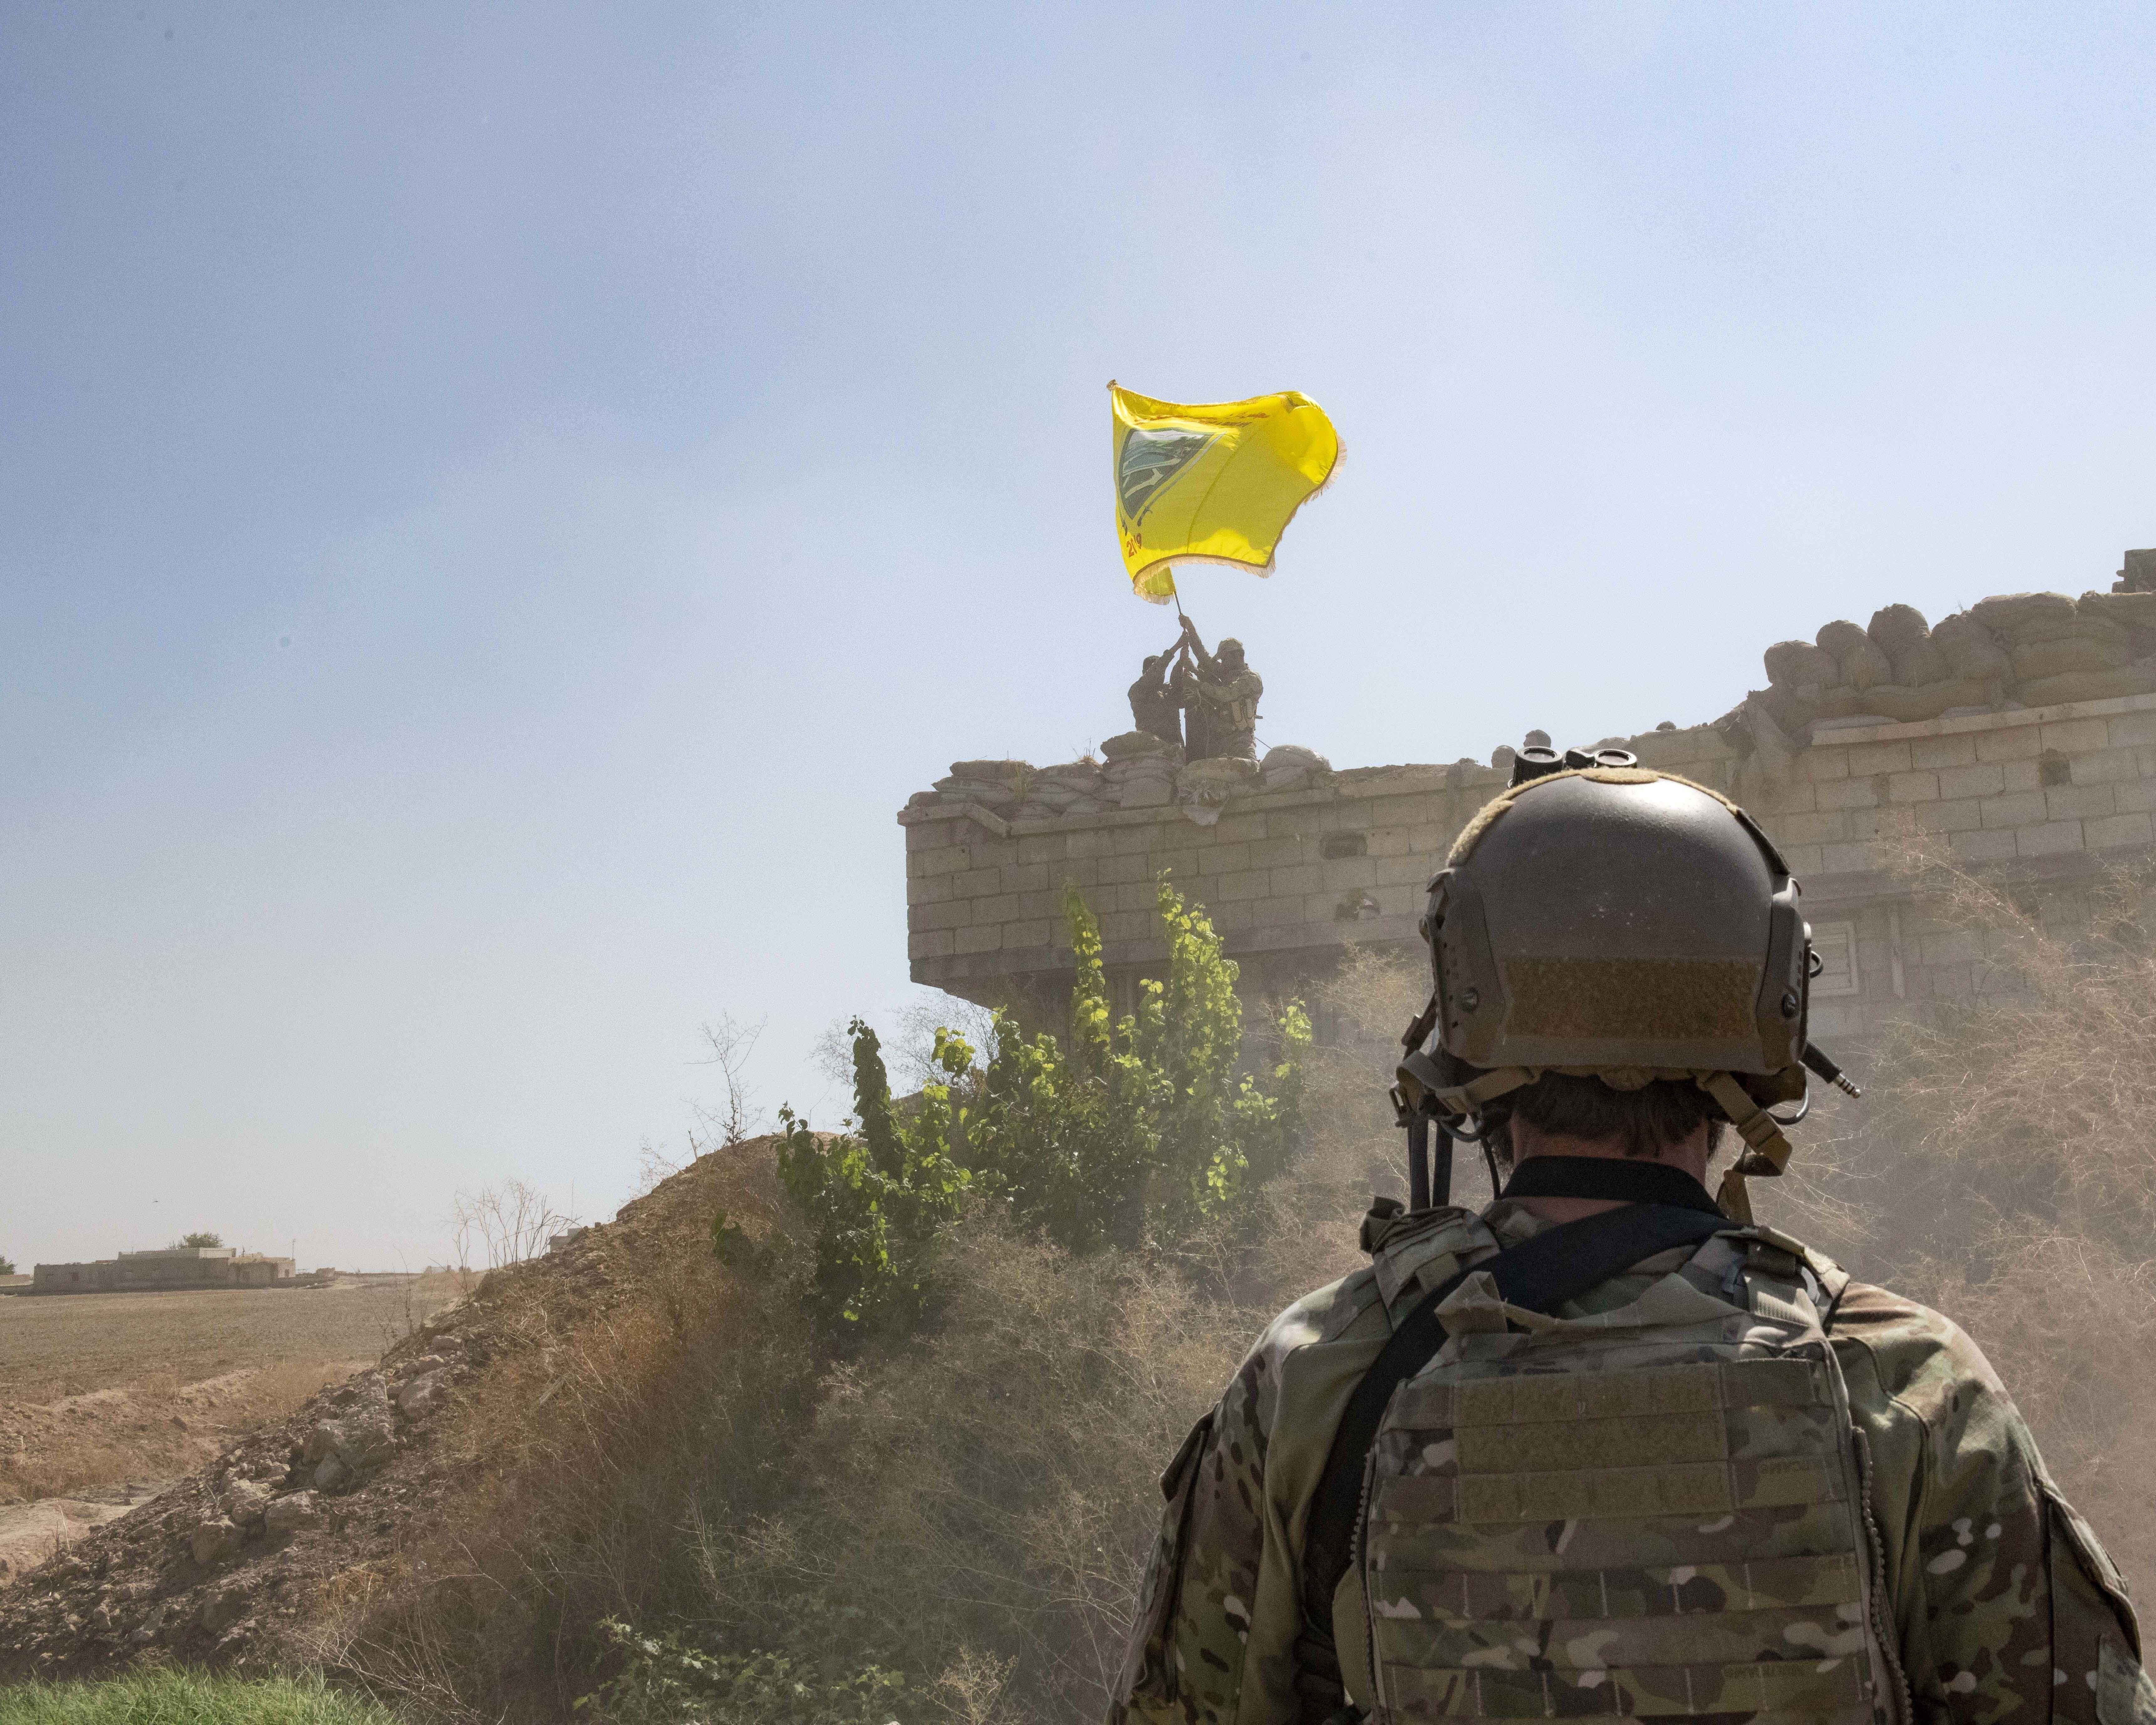 In this Sept. 21, 2019, photo, released by the U.S. Army, a U.S. soldier oversees members of the Syrian Democratic Forces as they demolish a Kurdish fighters' fortification and raise a Tal Abyad Military Council flag over the outpost as part of the so-called